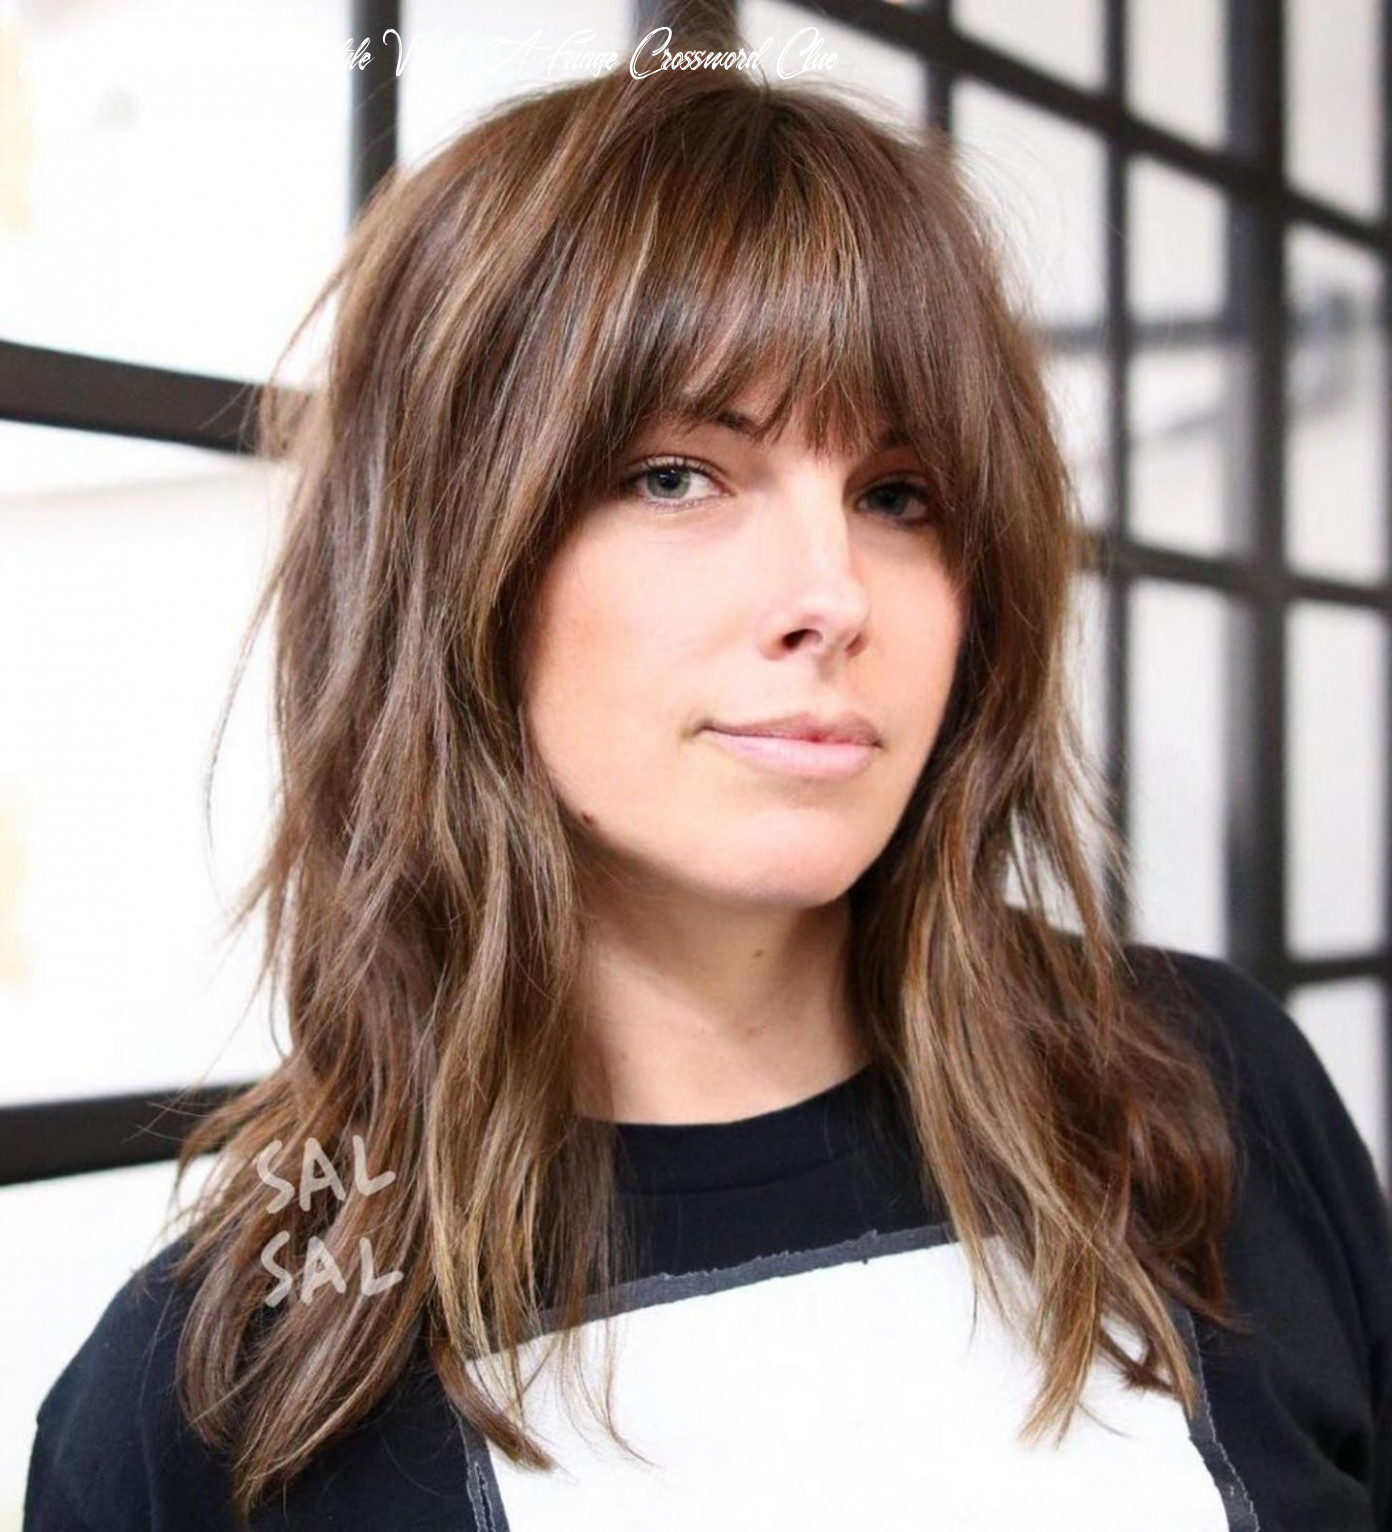 Medium length hairstyle bangs medium length hairstyle with a fringe crossword clue